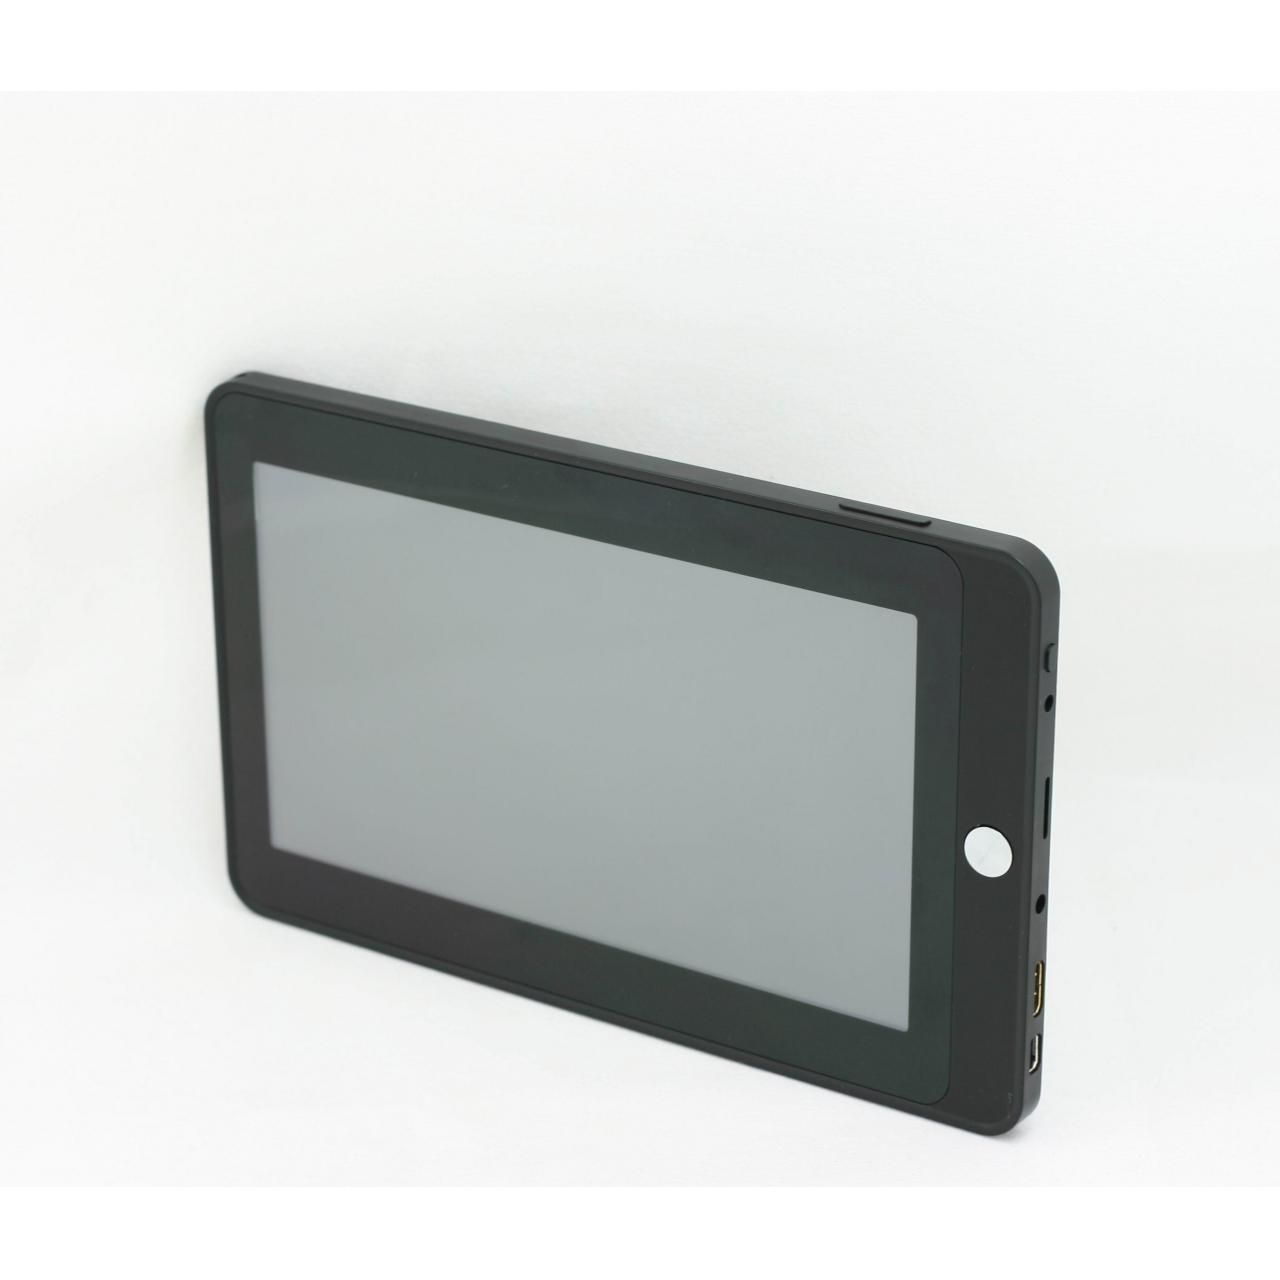 Tablet Computers 7-Inch Tablet PCs Manufactures